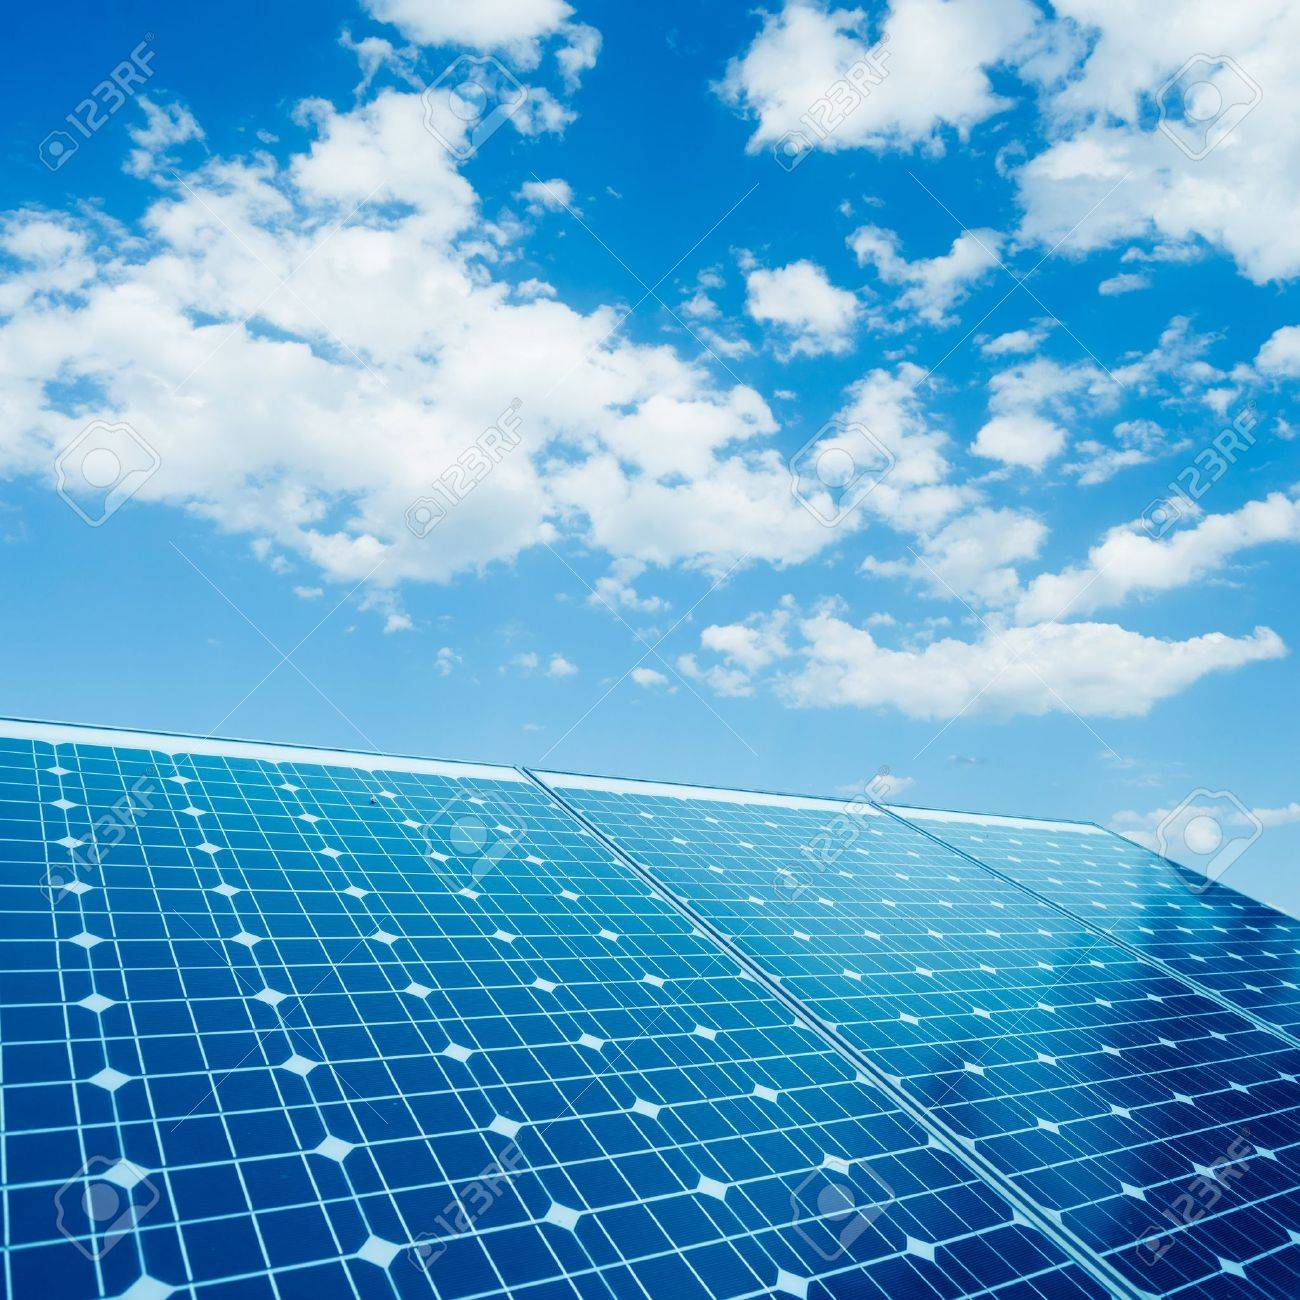 photovoltaic cells and sunlight background - 20183506